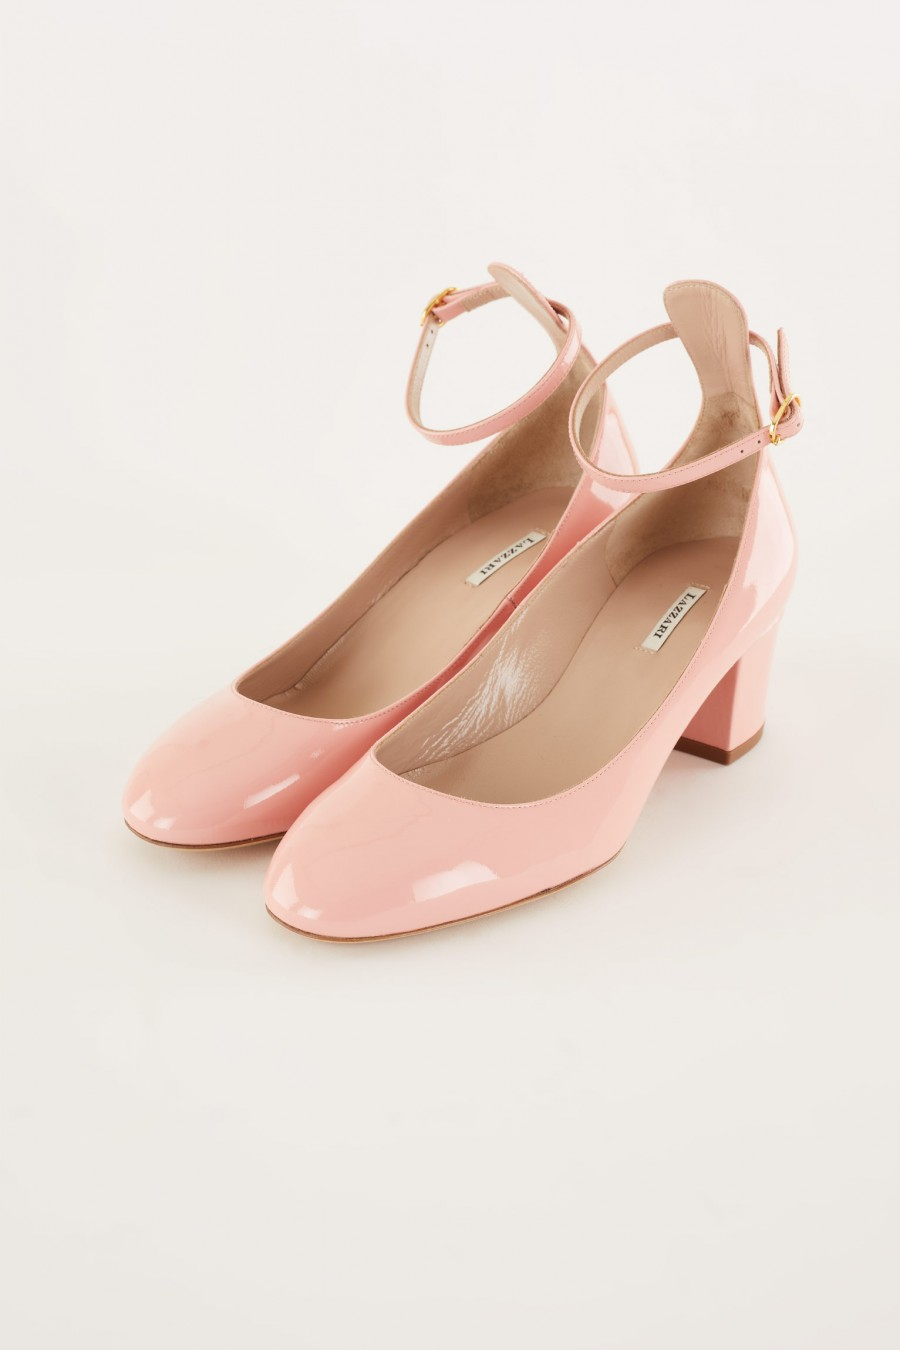 patent pink Mary Jane with ankle strap